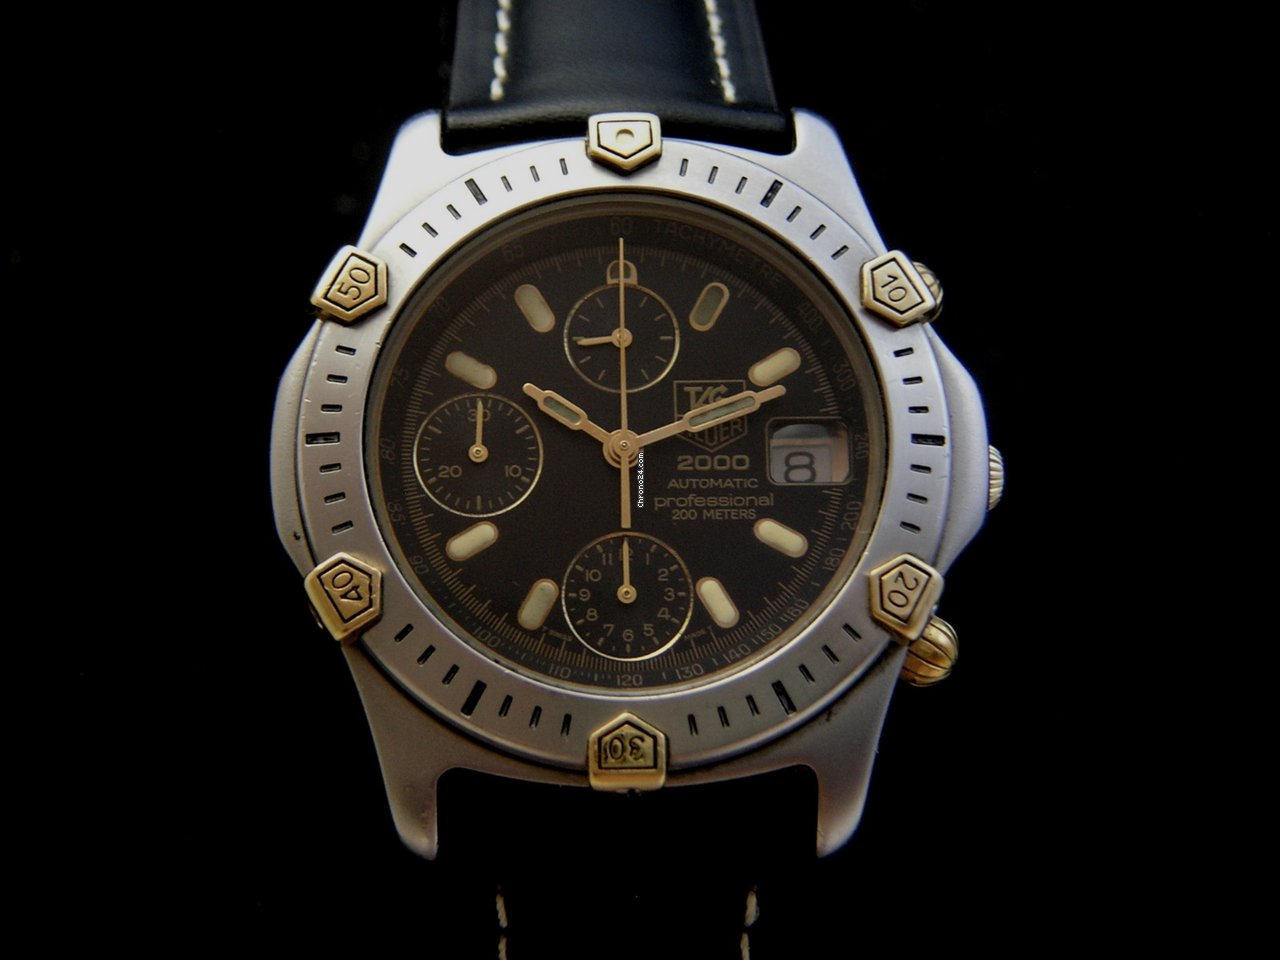 TAG Heuer Automatic 2000 Chronograph sold on Chrono24